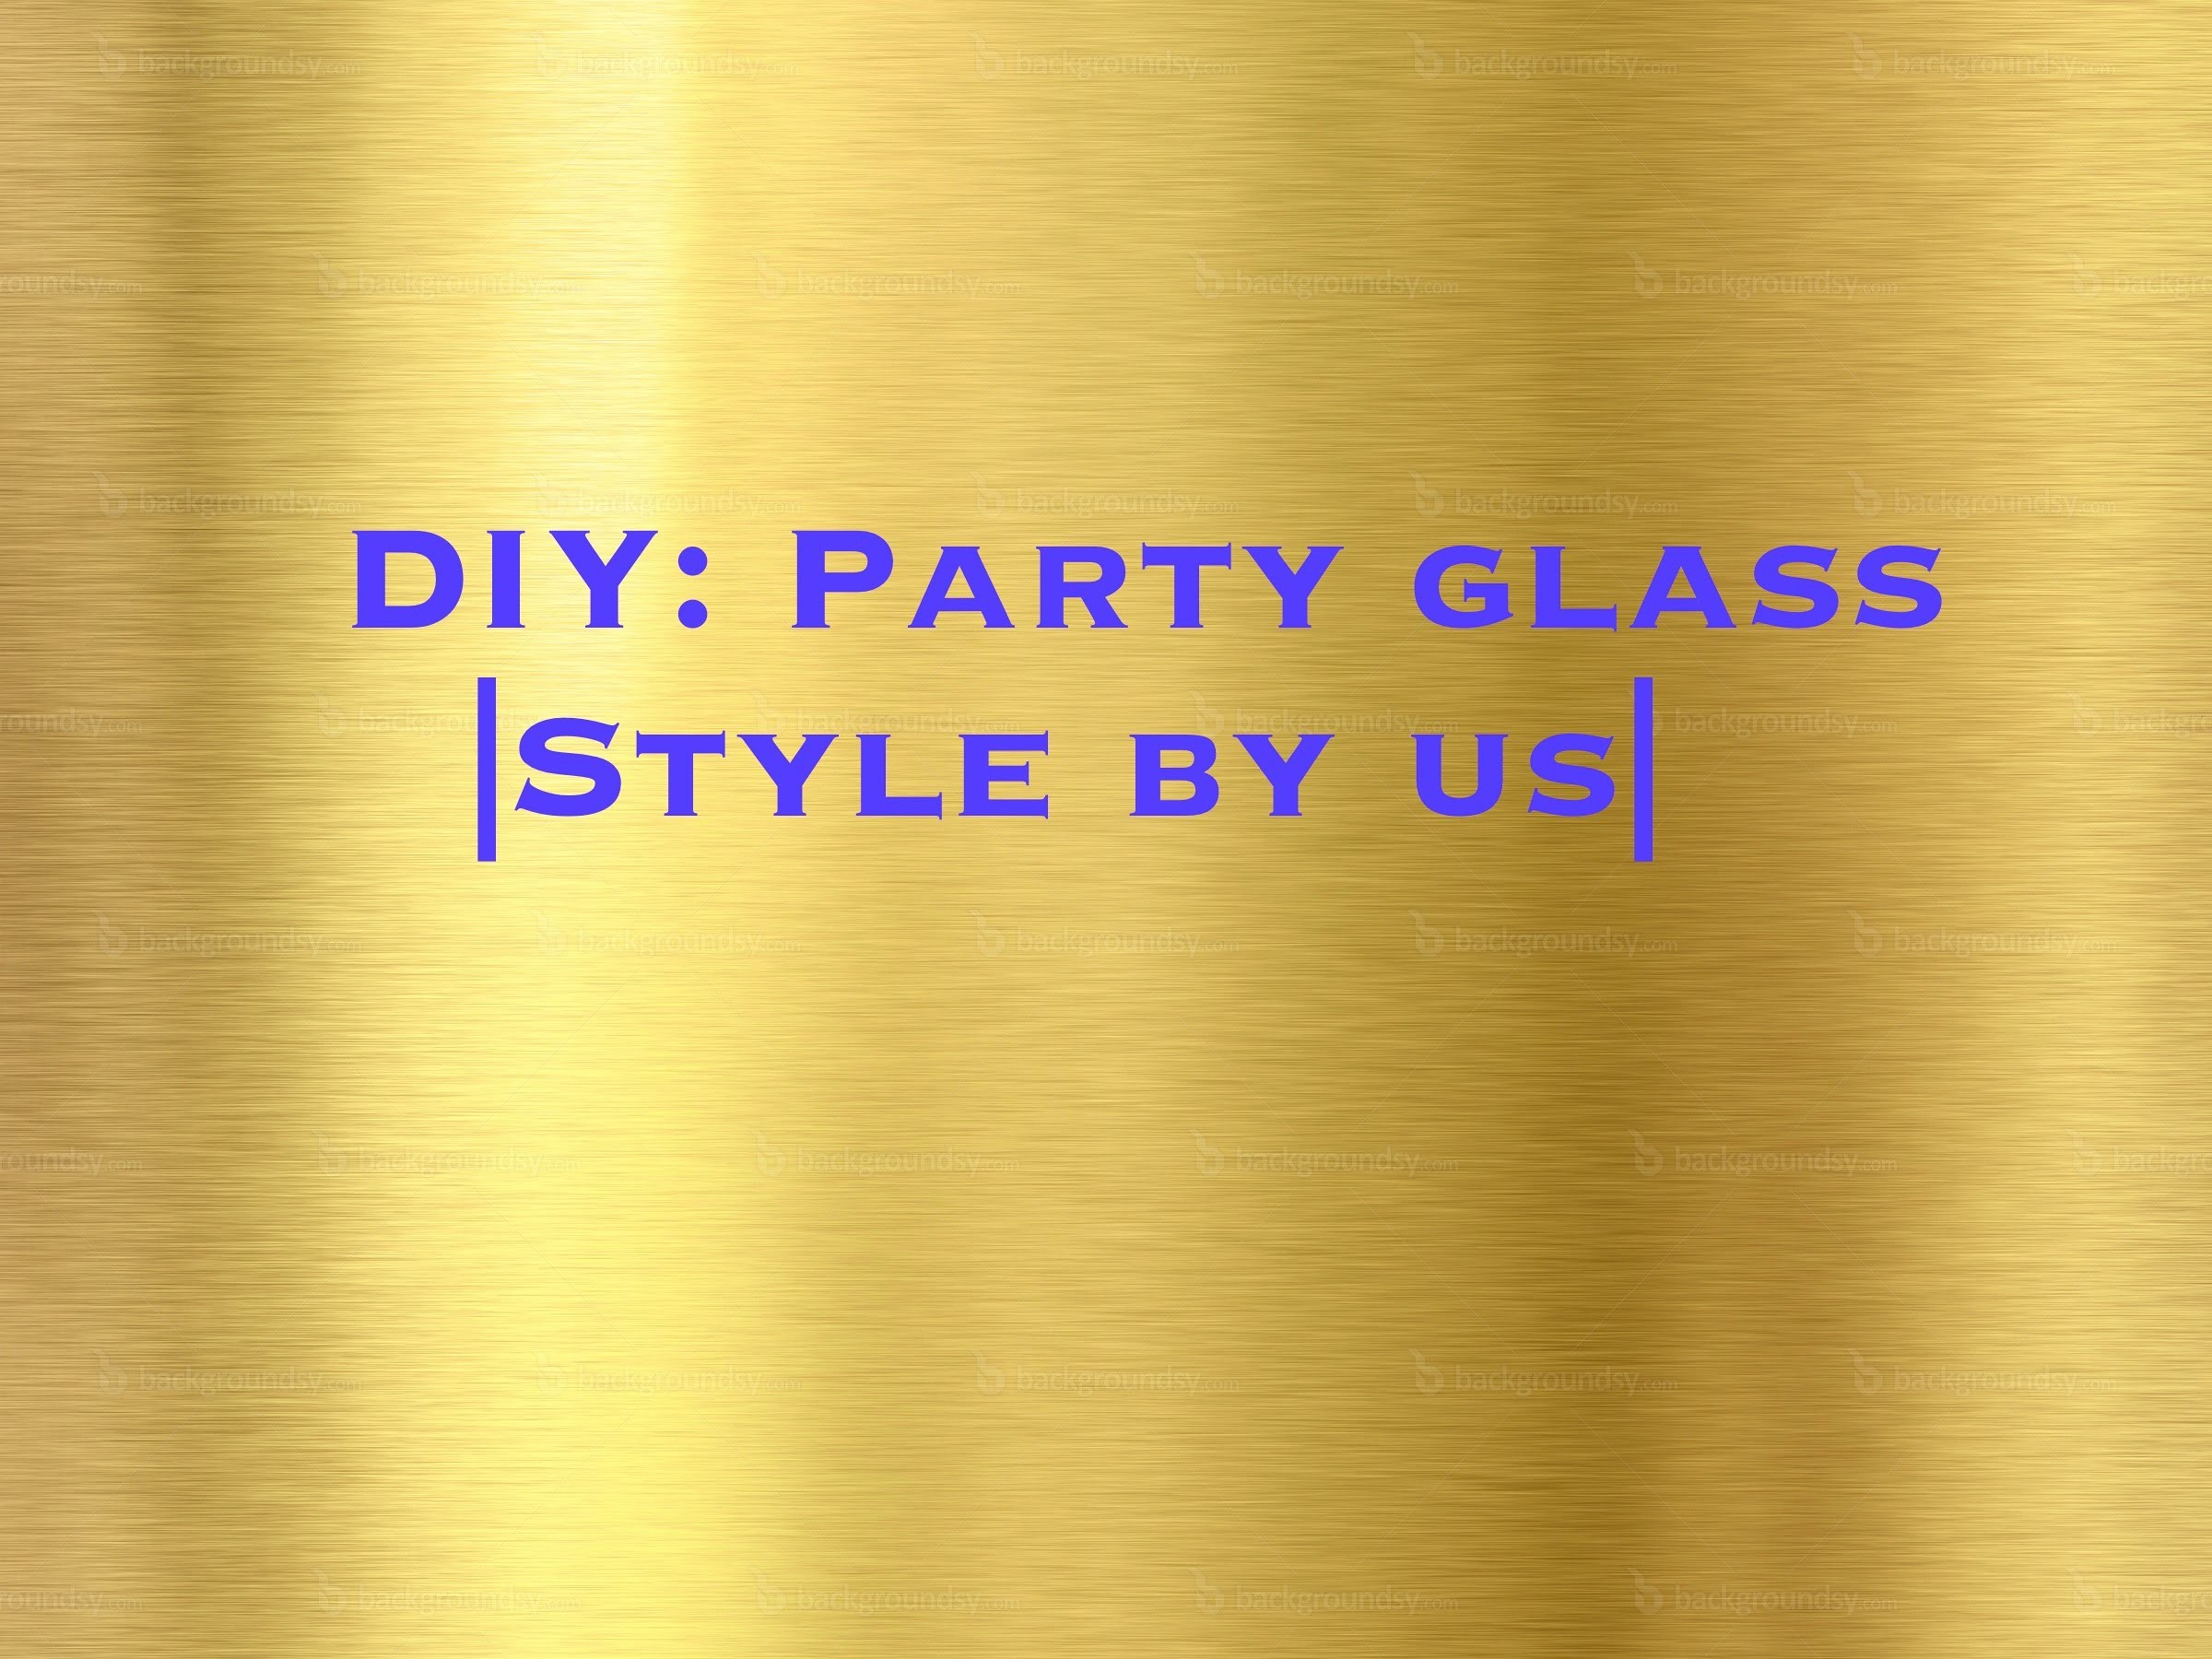 DIY: Party glass, Do it yourself |Style by us|